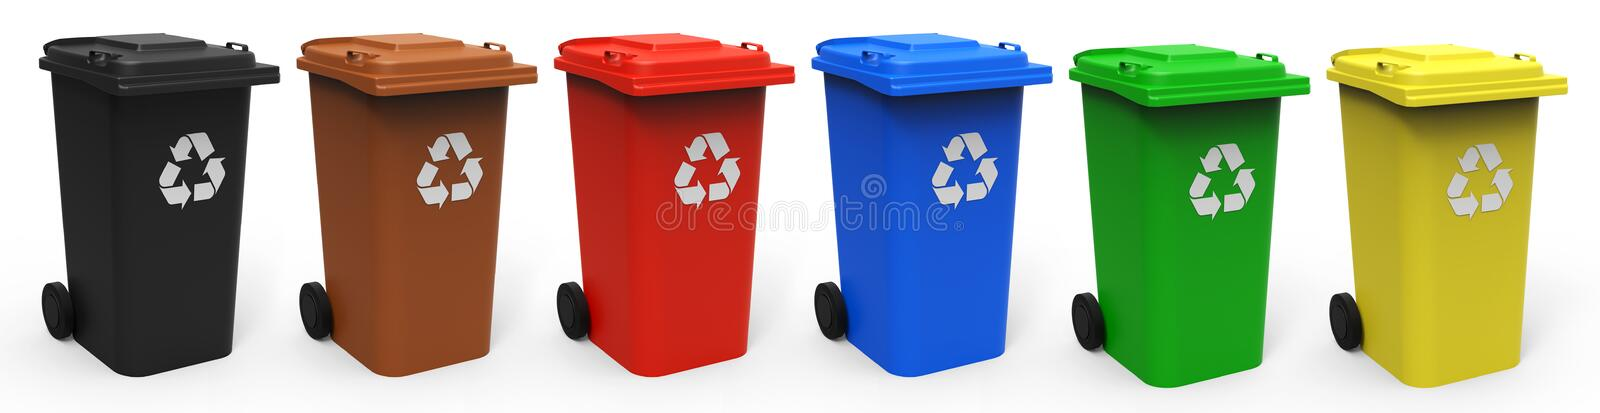 Recycle bins. Different colors recycle bins isolated on white background 3D rendering stock image